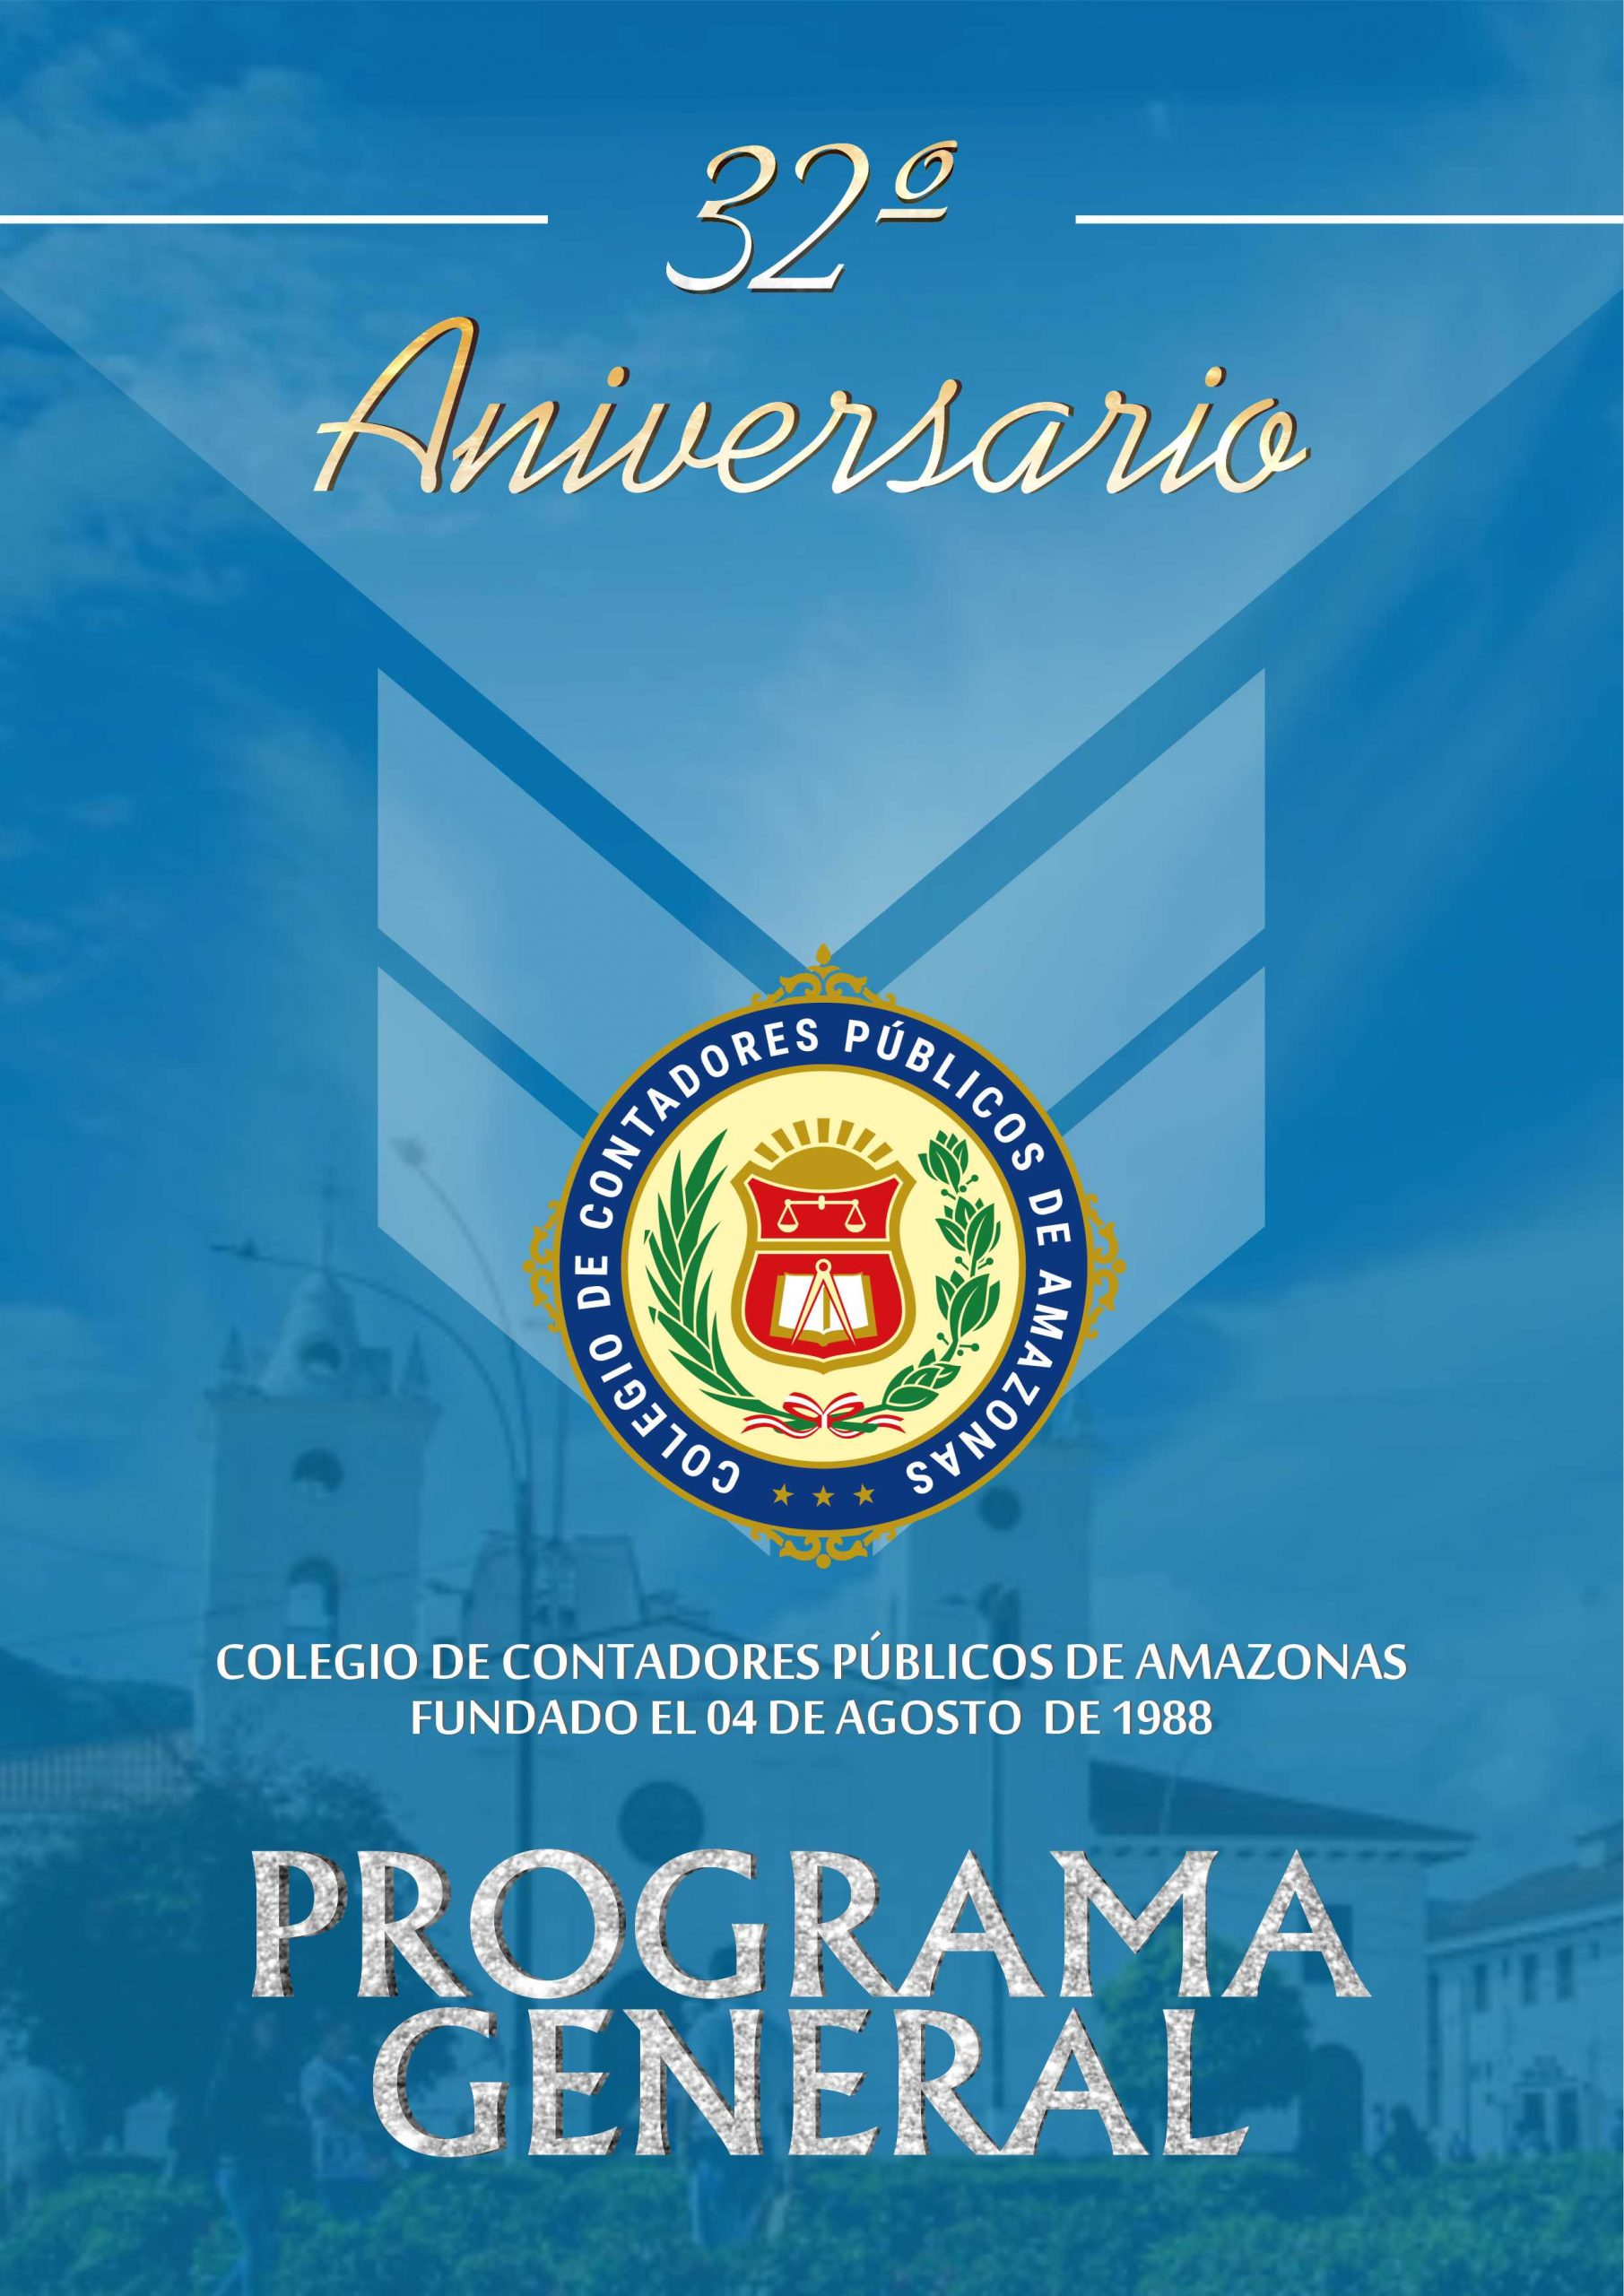 Thumbnail for the post titled: ANIVERSARIO 32°